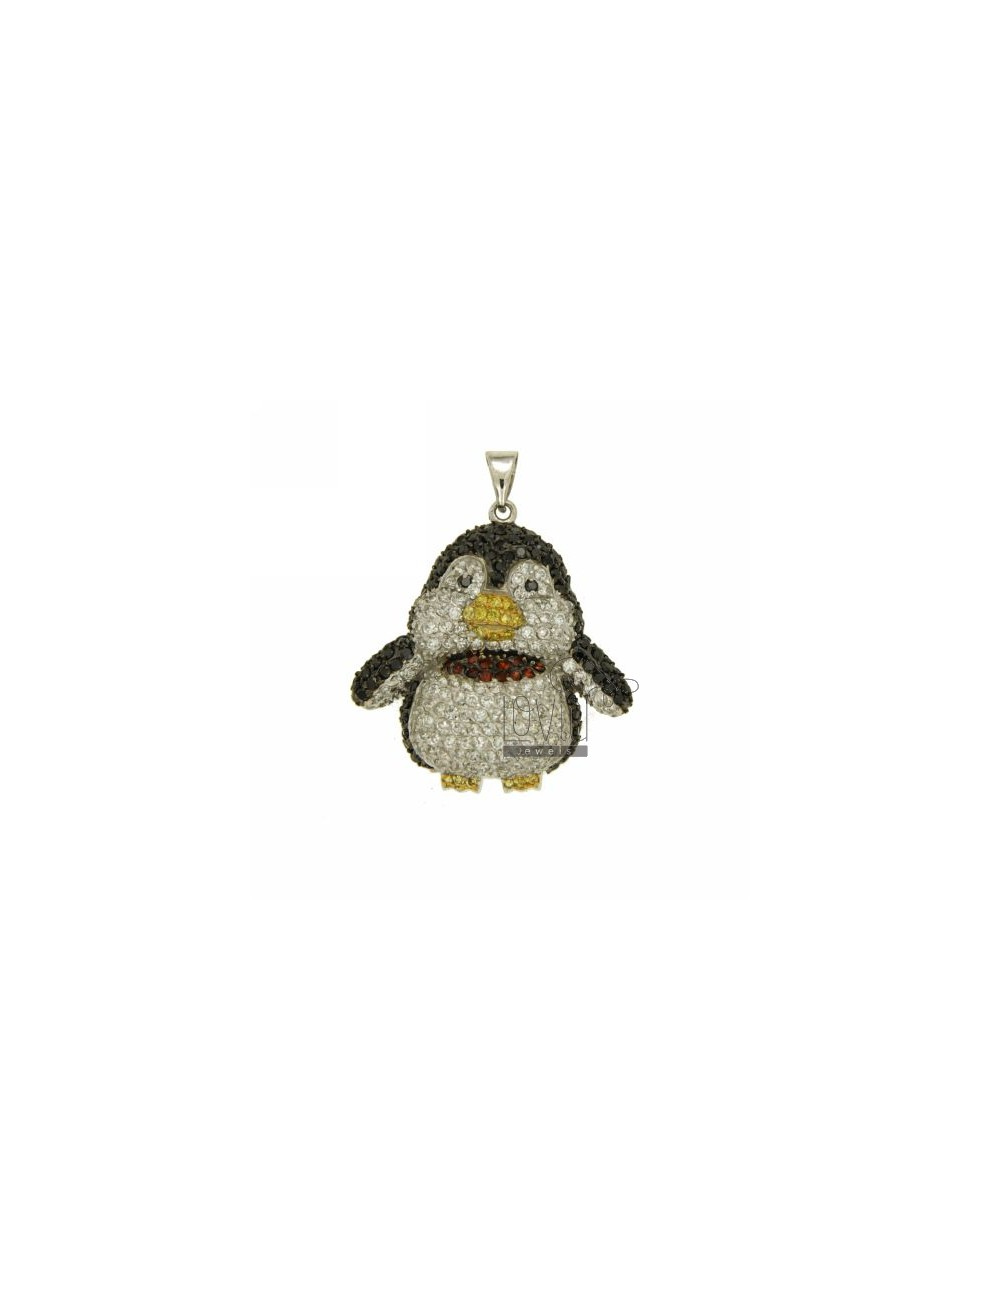 PENDANT PENGUIN 35X33 MM IN AG TIT 925 ‰ AND ZIRCONIA